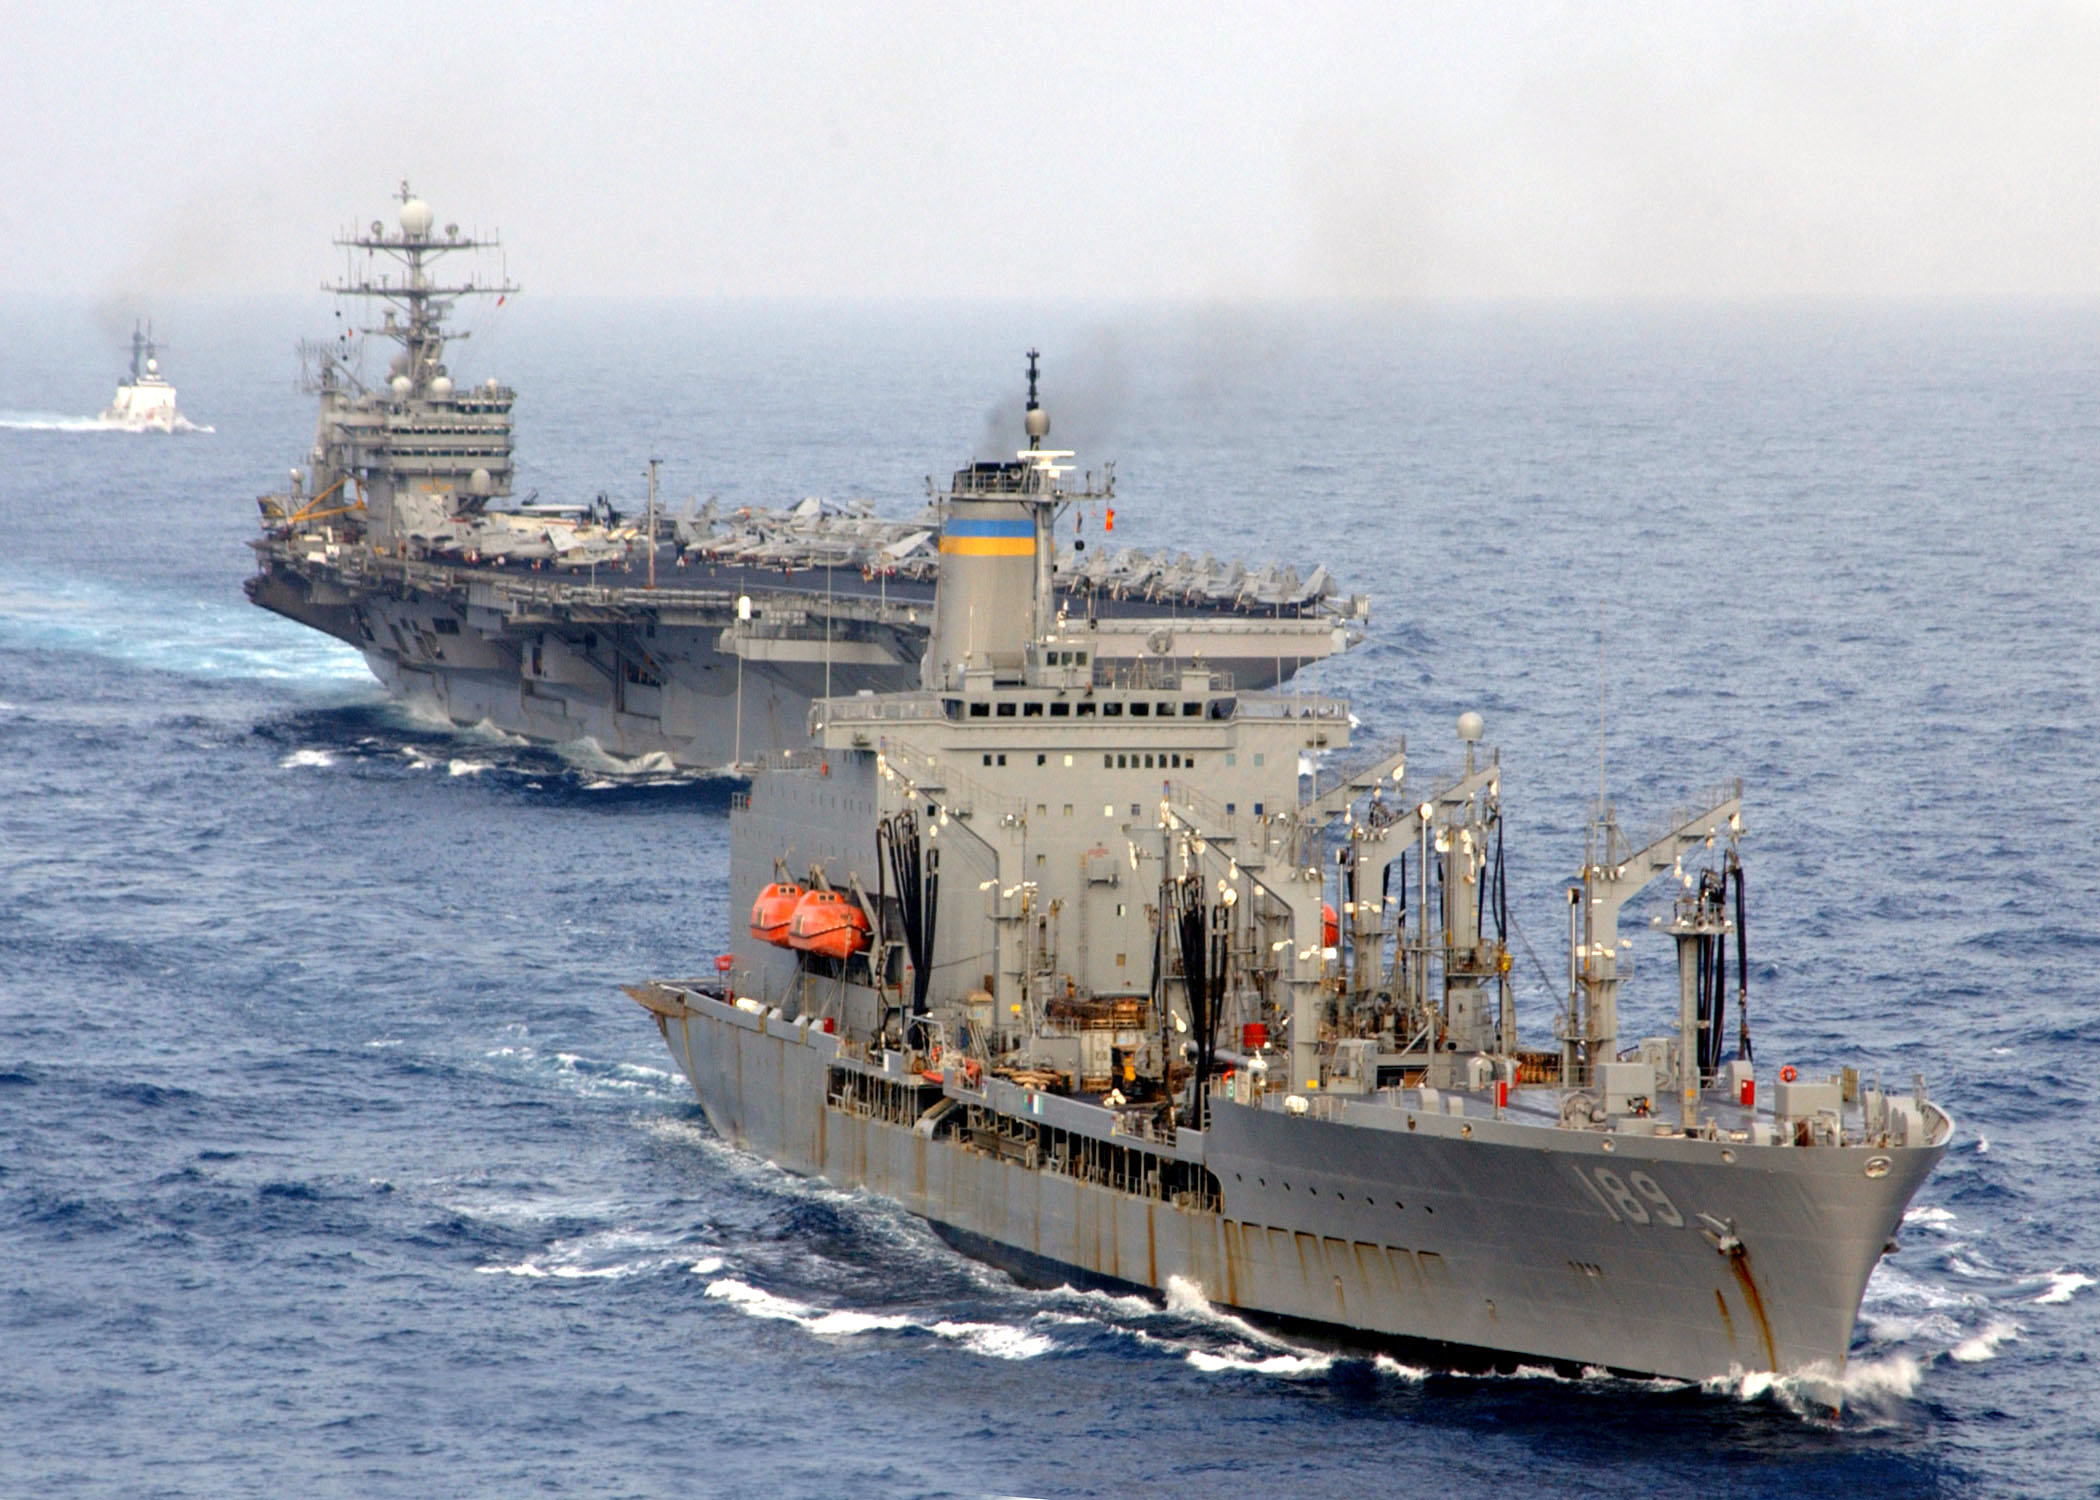 Uss Harry S. Truman (cvn 75) Comes Alongside The Military Sealift.